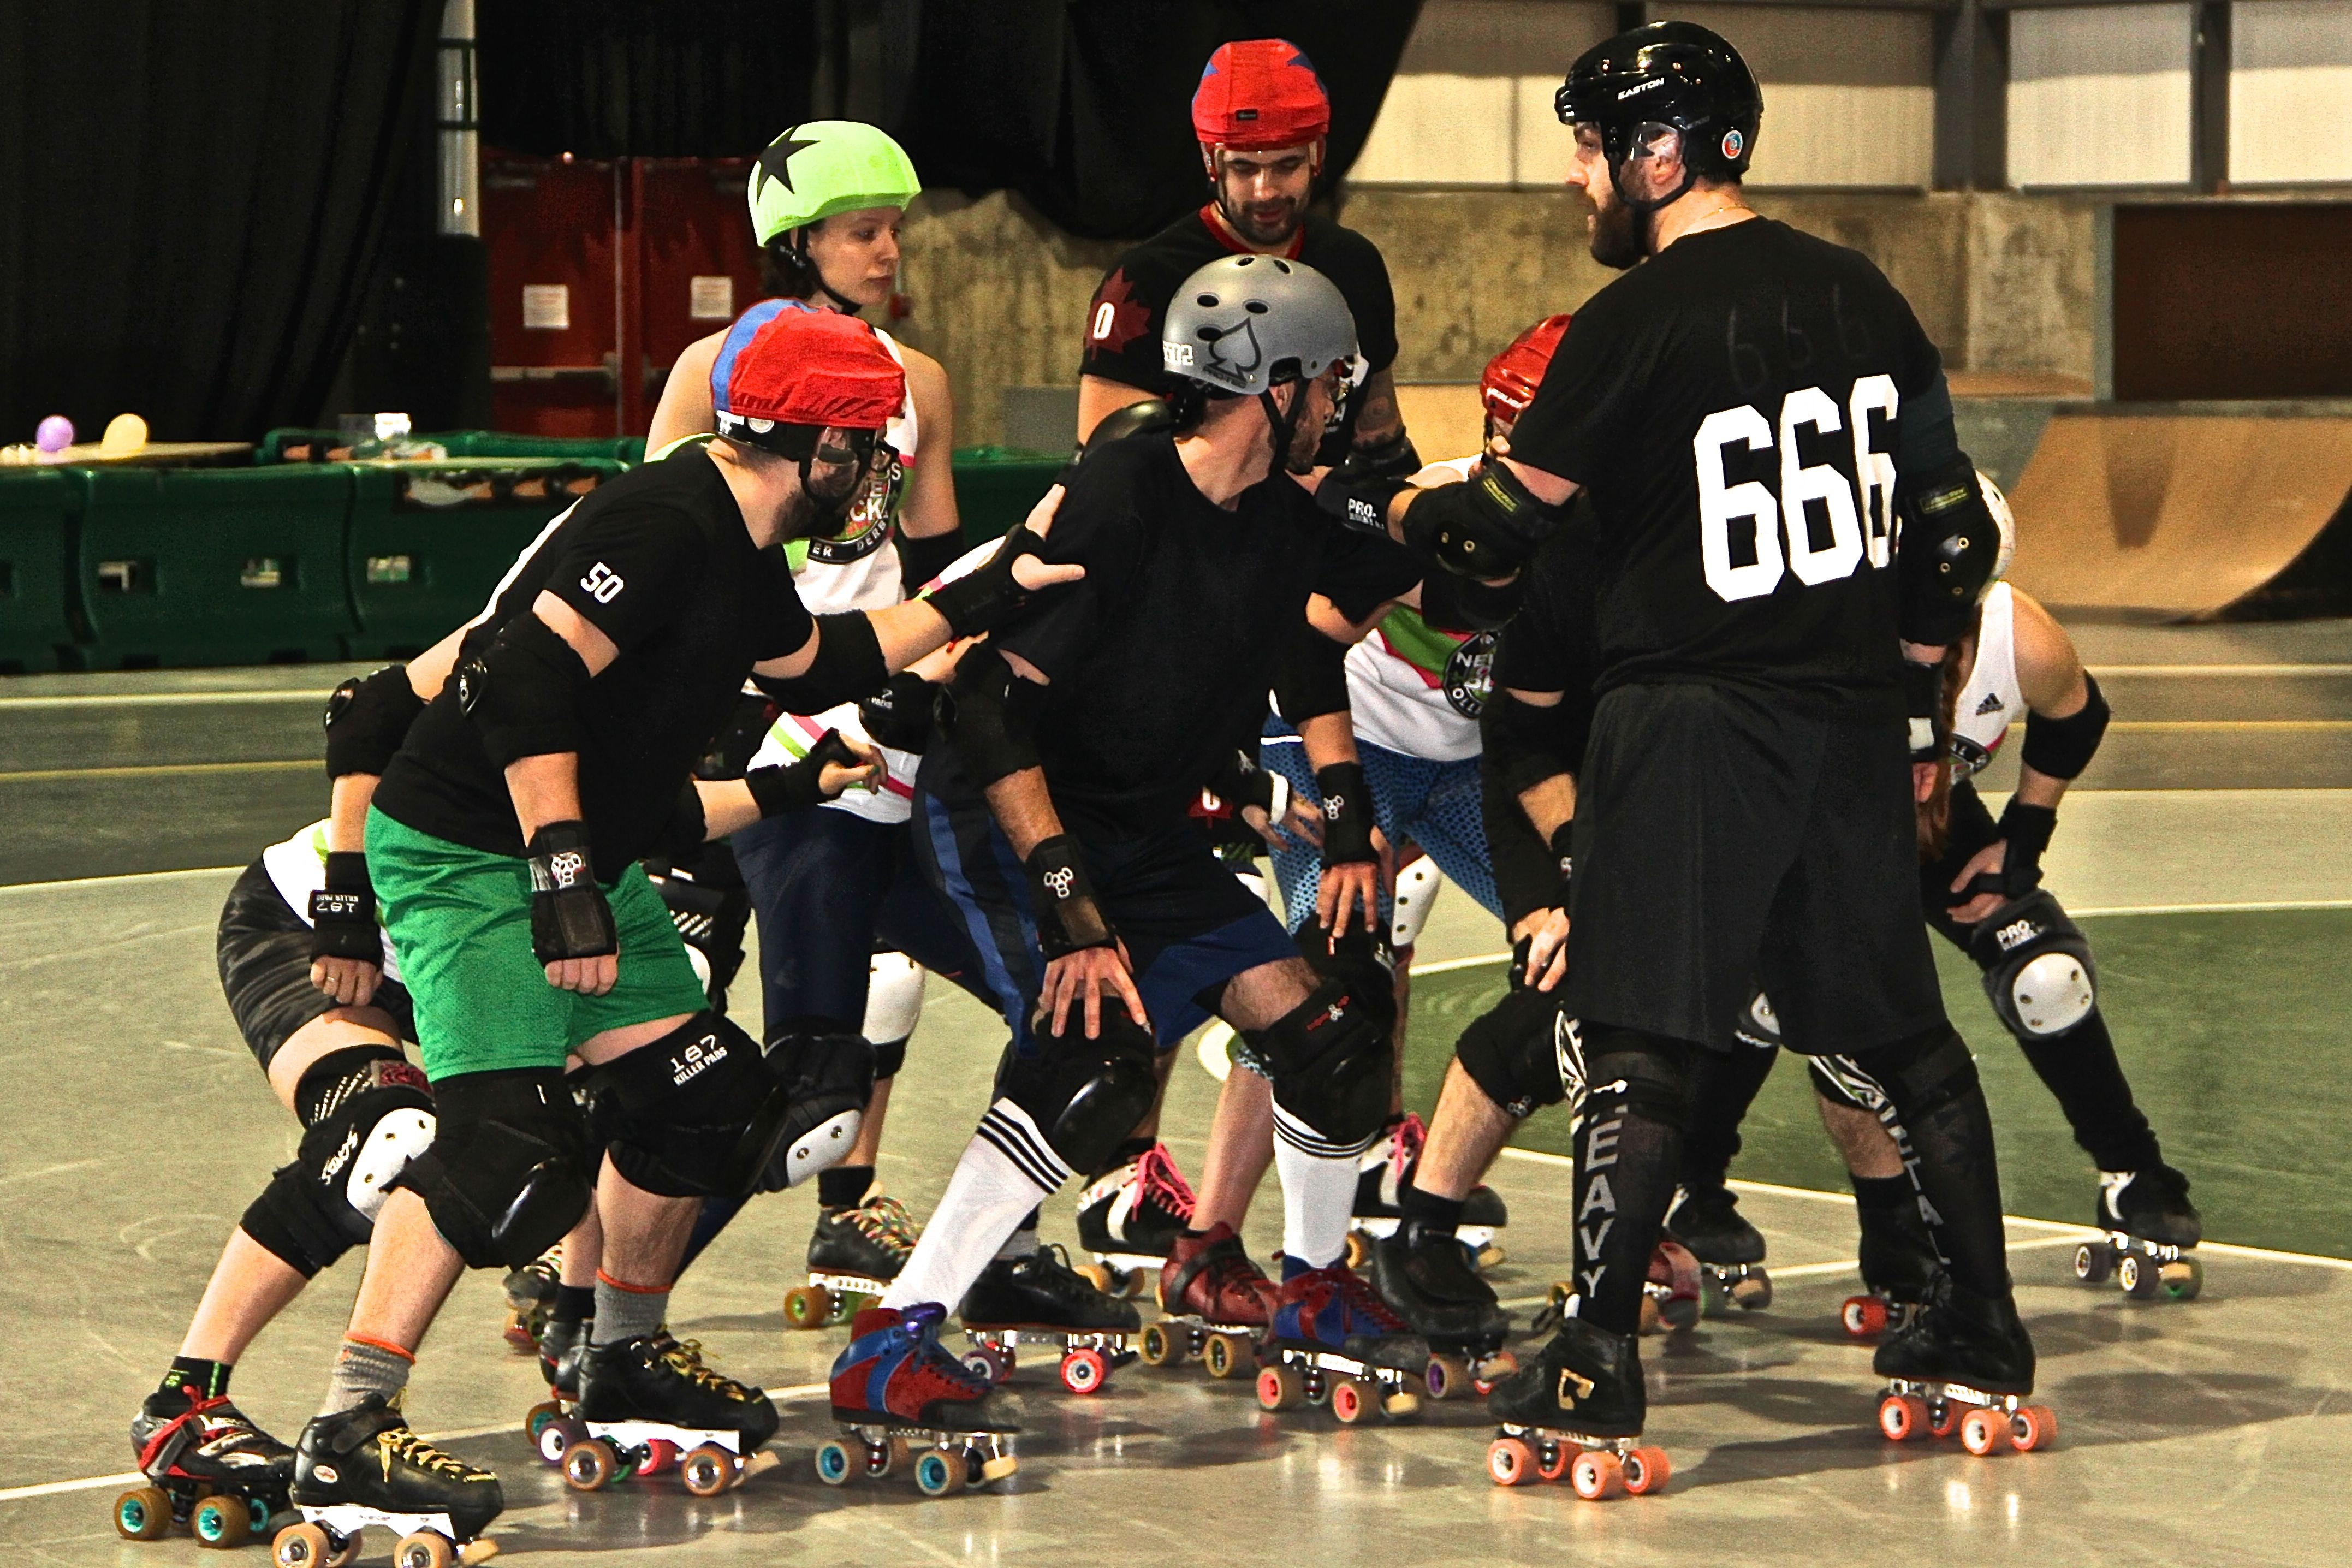 Roller skating montreal - You Shall Not Pass Leht Buddy Oli 50 Middle